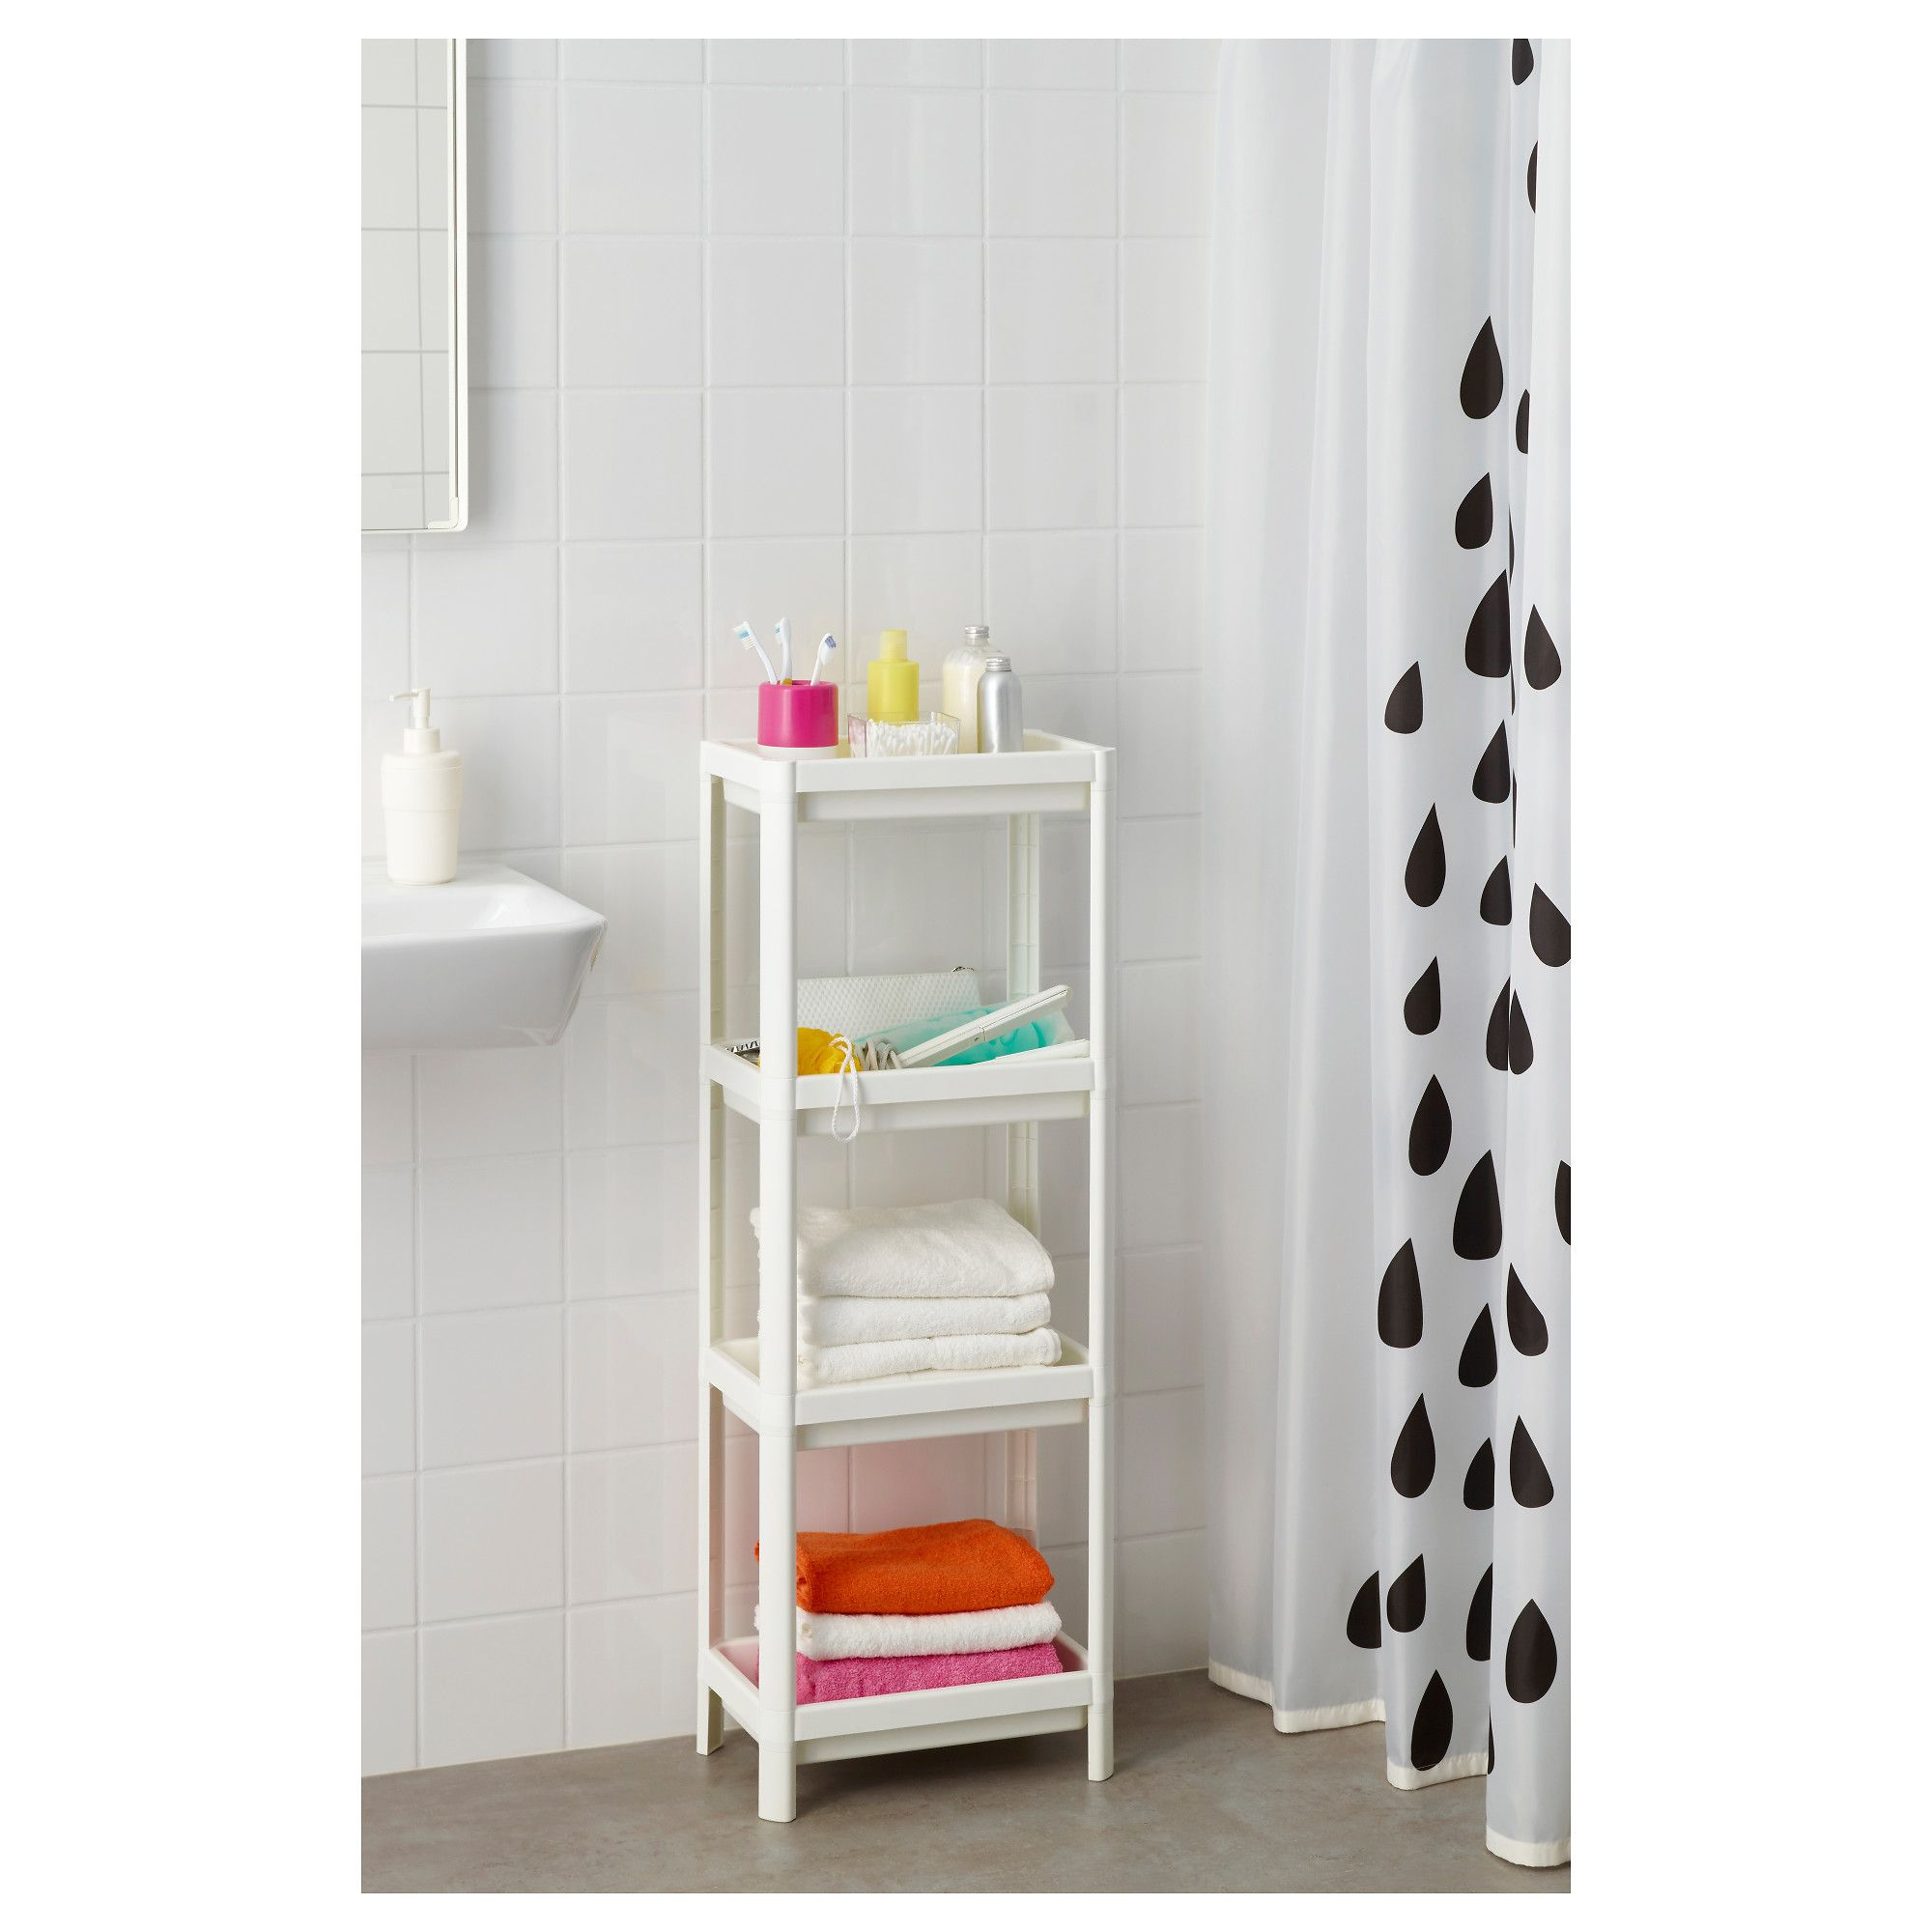 VESKEN white, Shelf unit, 8x8x8 cm - IKEA  Shelf unit, Ikea